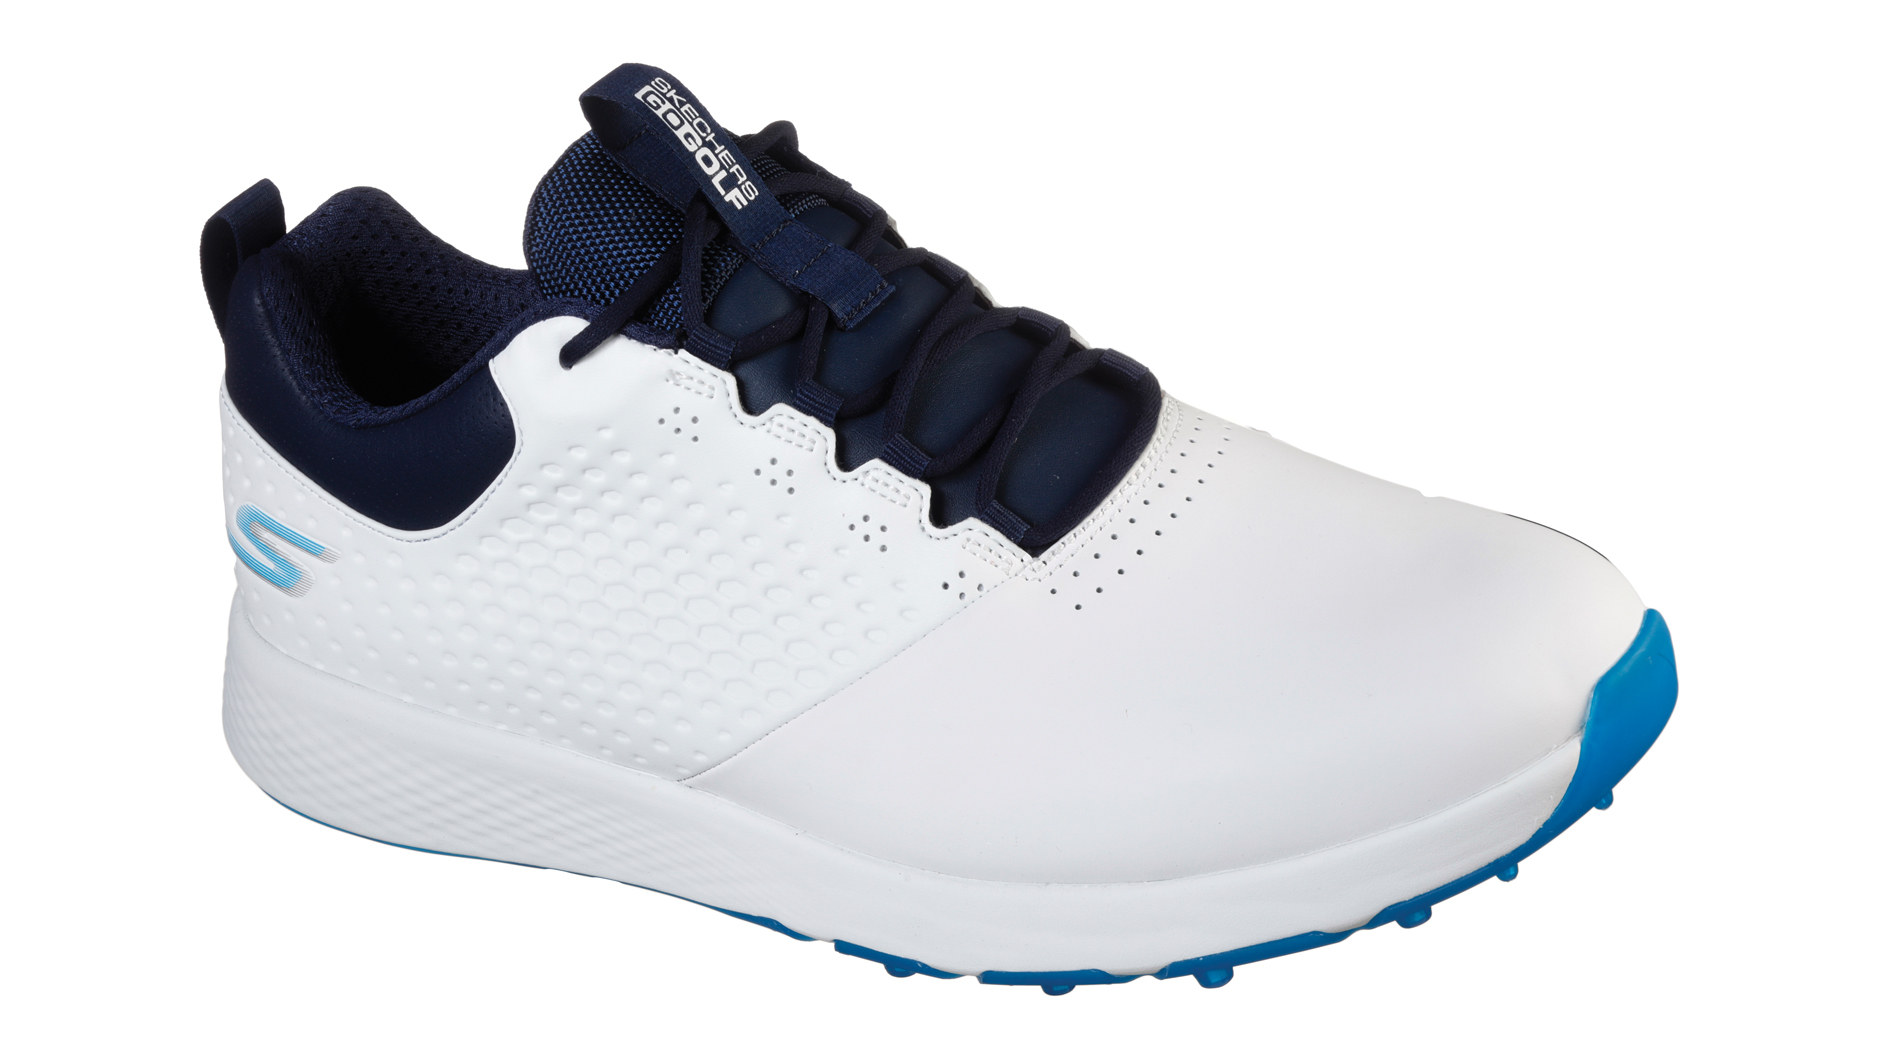 Cruel Pensamiento Espectacular  Tested: Skechers GO GOLF Elite V.4 Shoes - Golf Australia Magazine